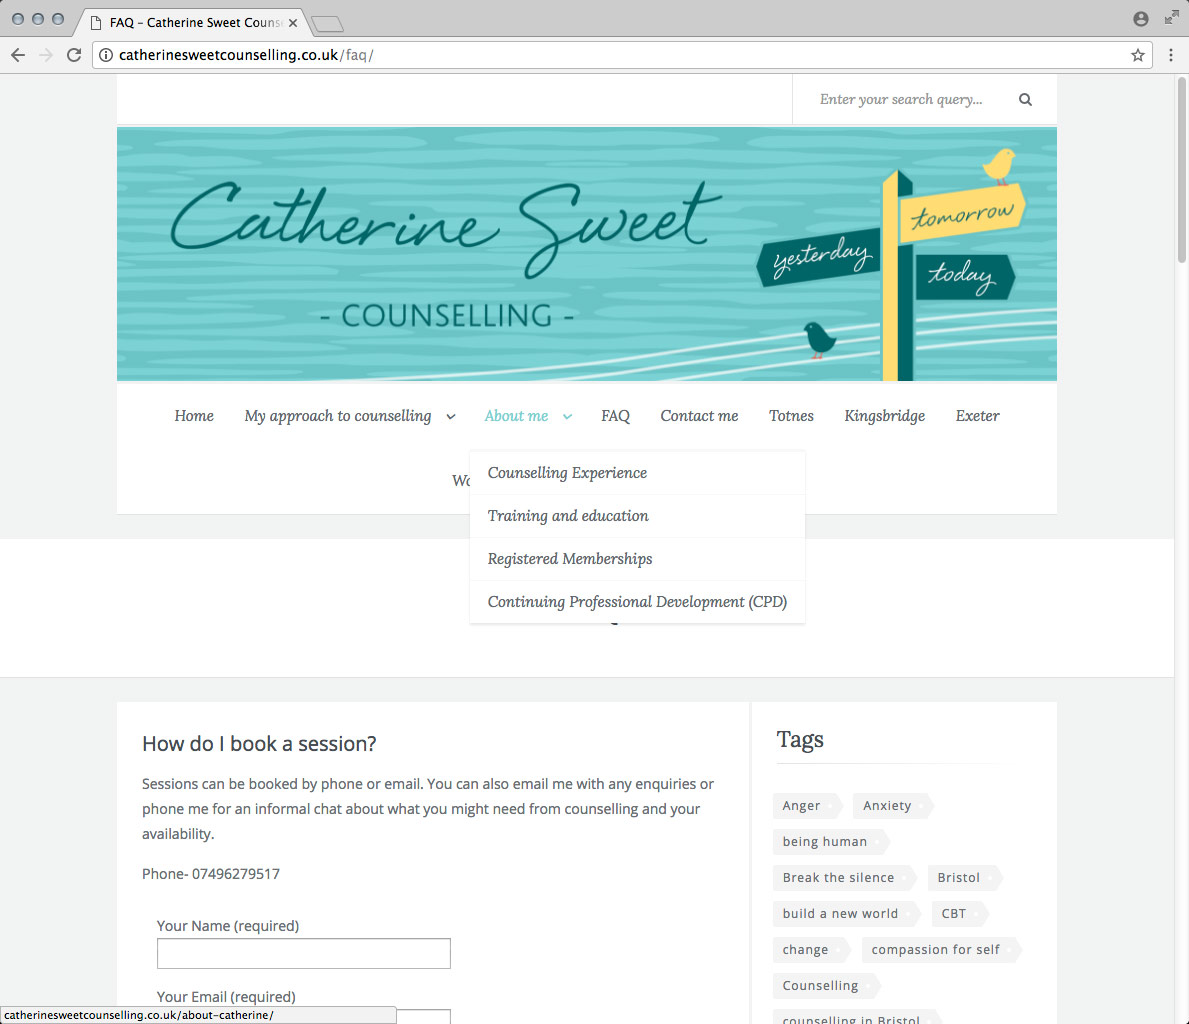 Website Development, Website Design and CMS. A Wordpress Website for Catherine Sweet, Counsellor.